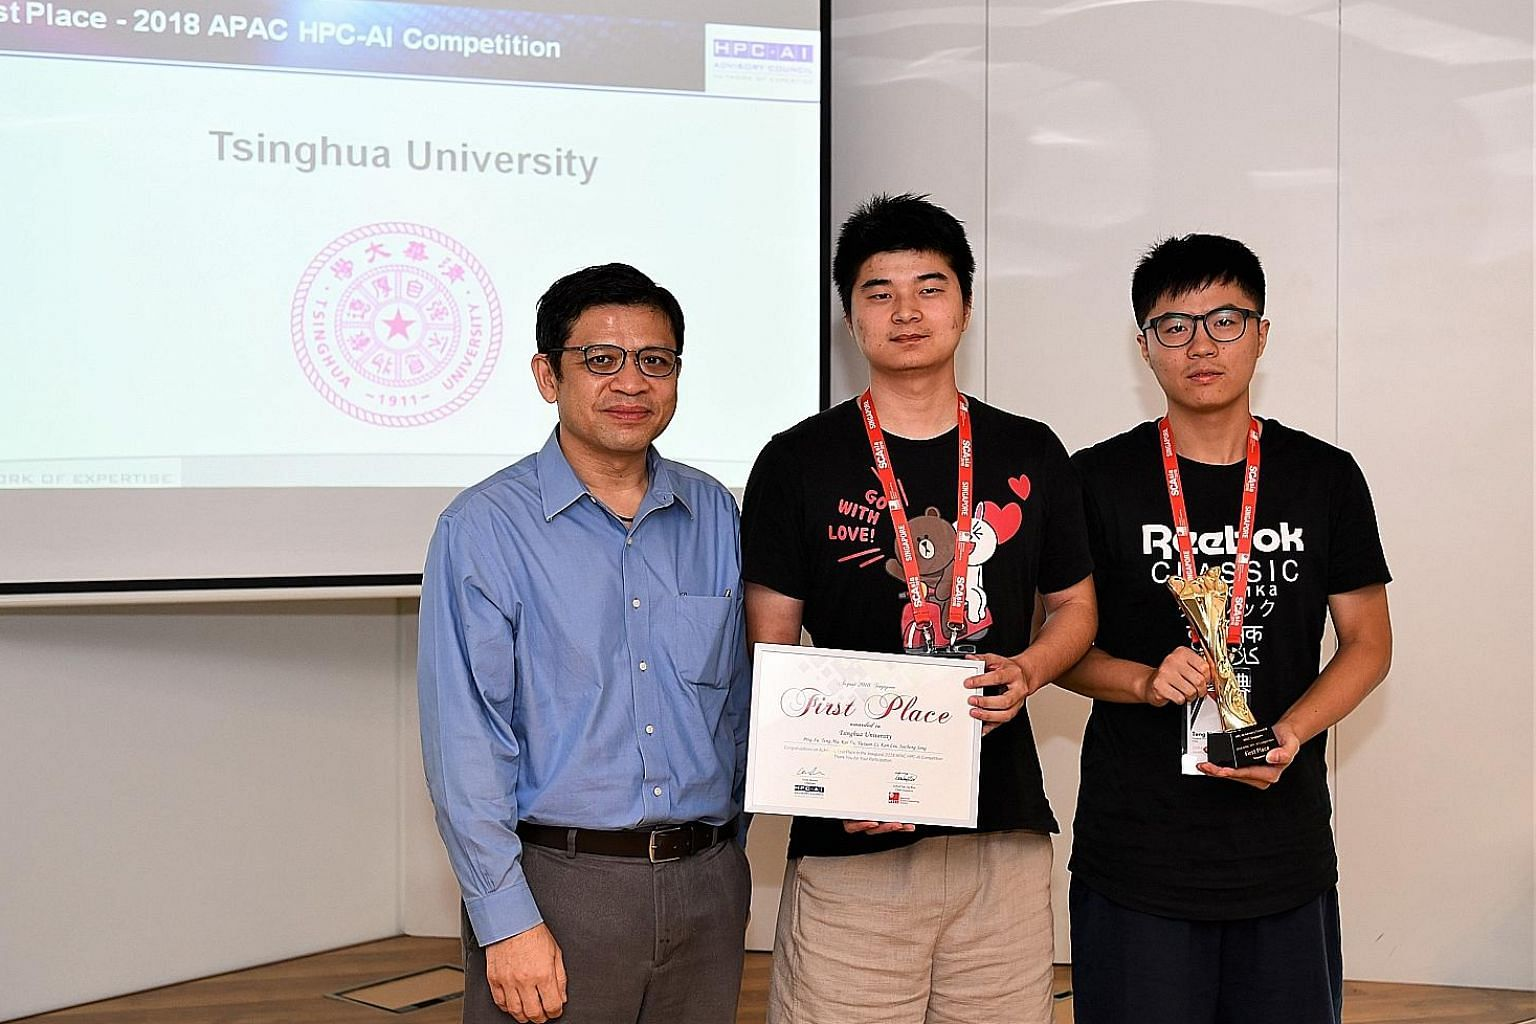 National Research Foundation president George Loh with master's students Xu Ping (centre), 23, and Ma Teng, 24, who were part of the Tsinghua University team that won the competition.